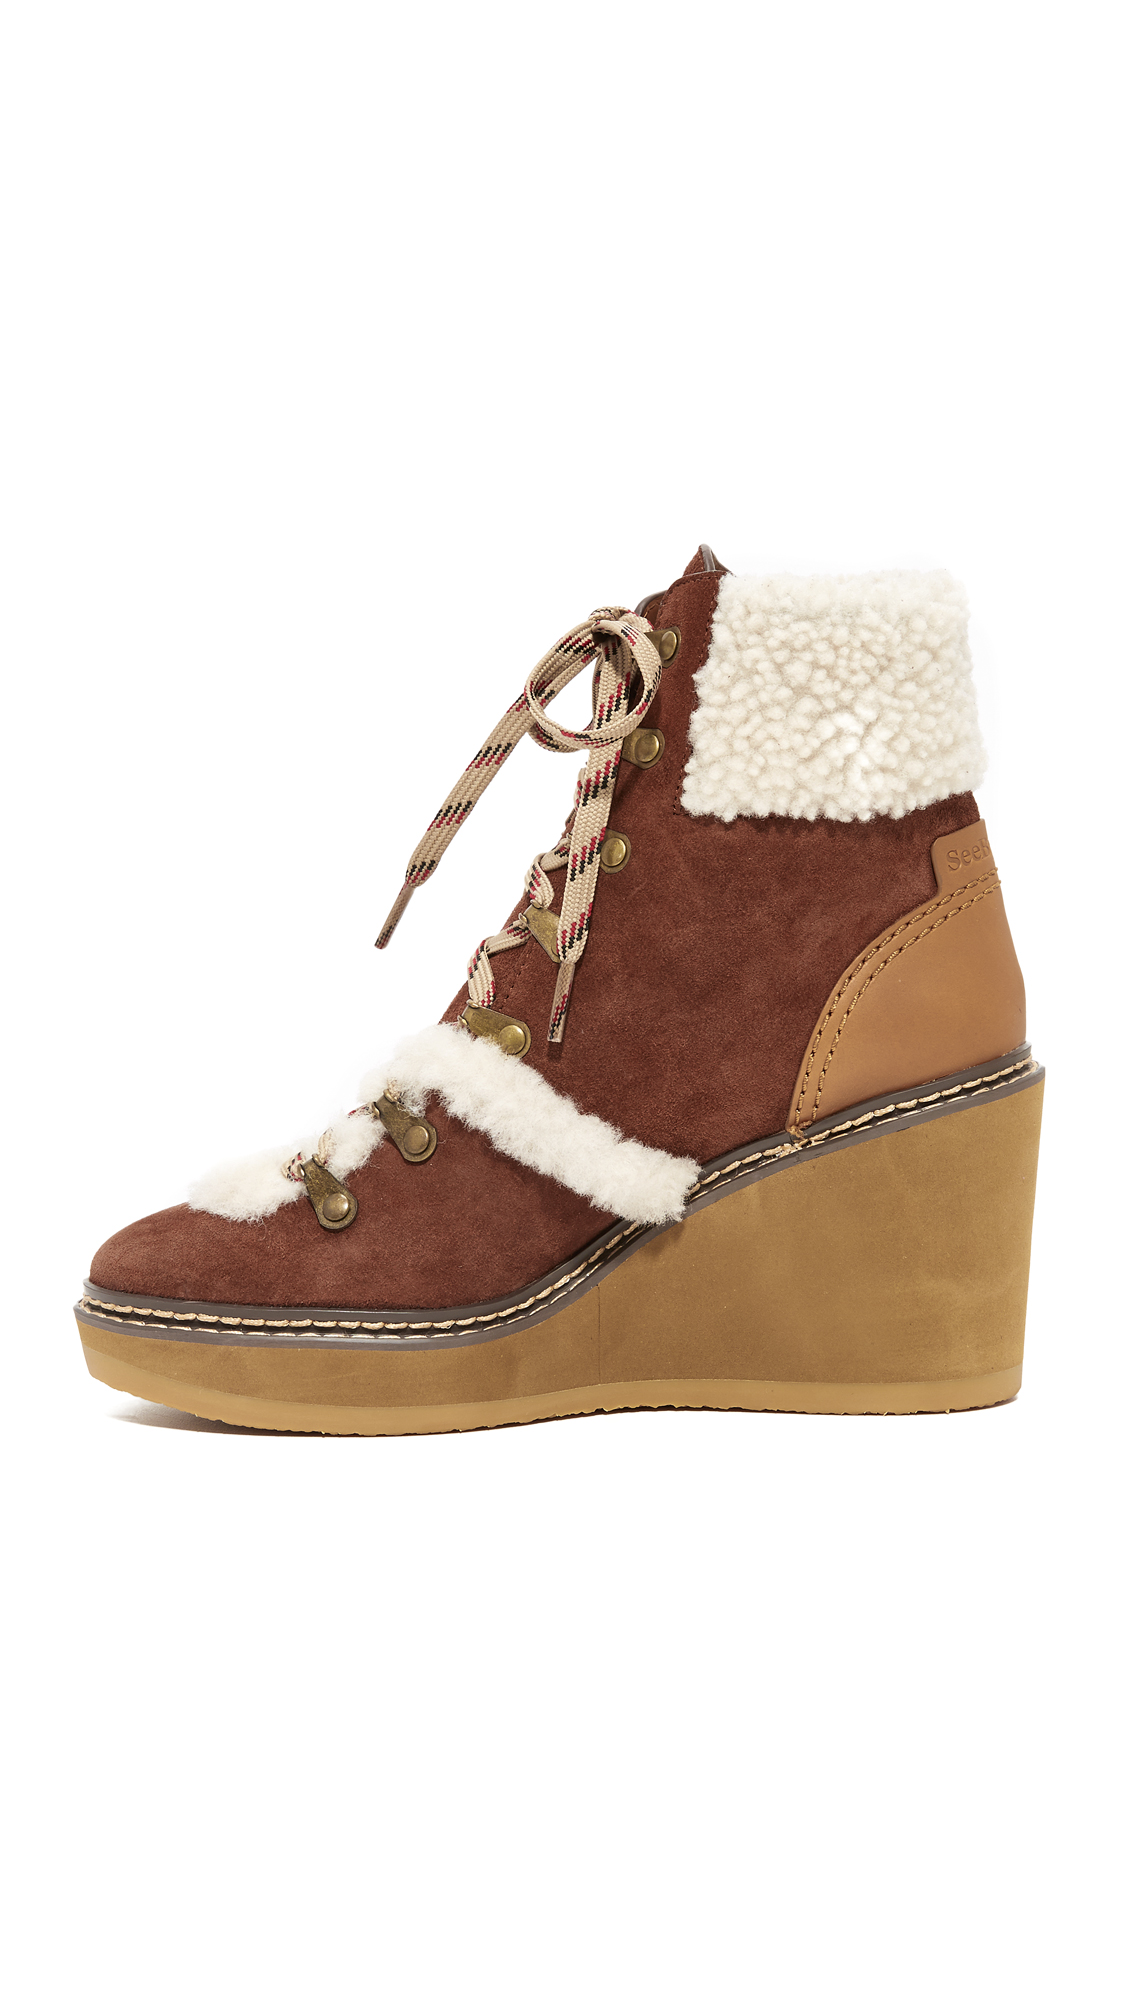 01fed9a5cb8e See by Chloe Eileen Wedge Shearling Booties